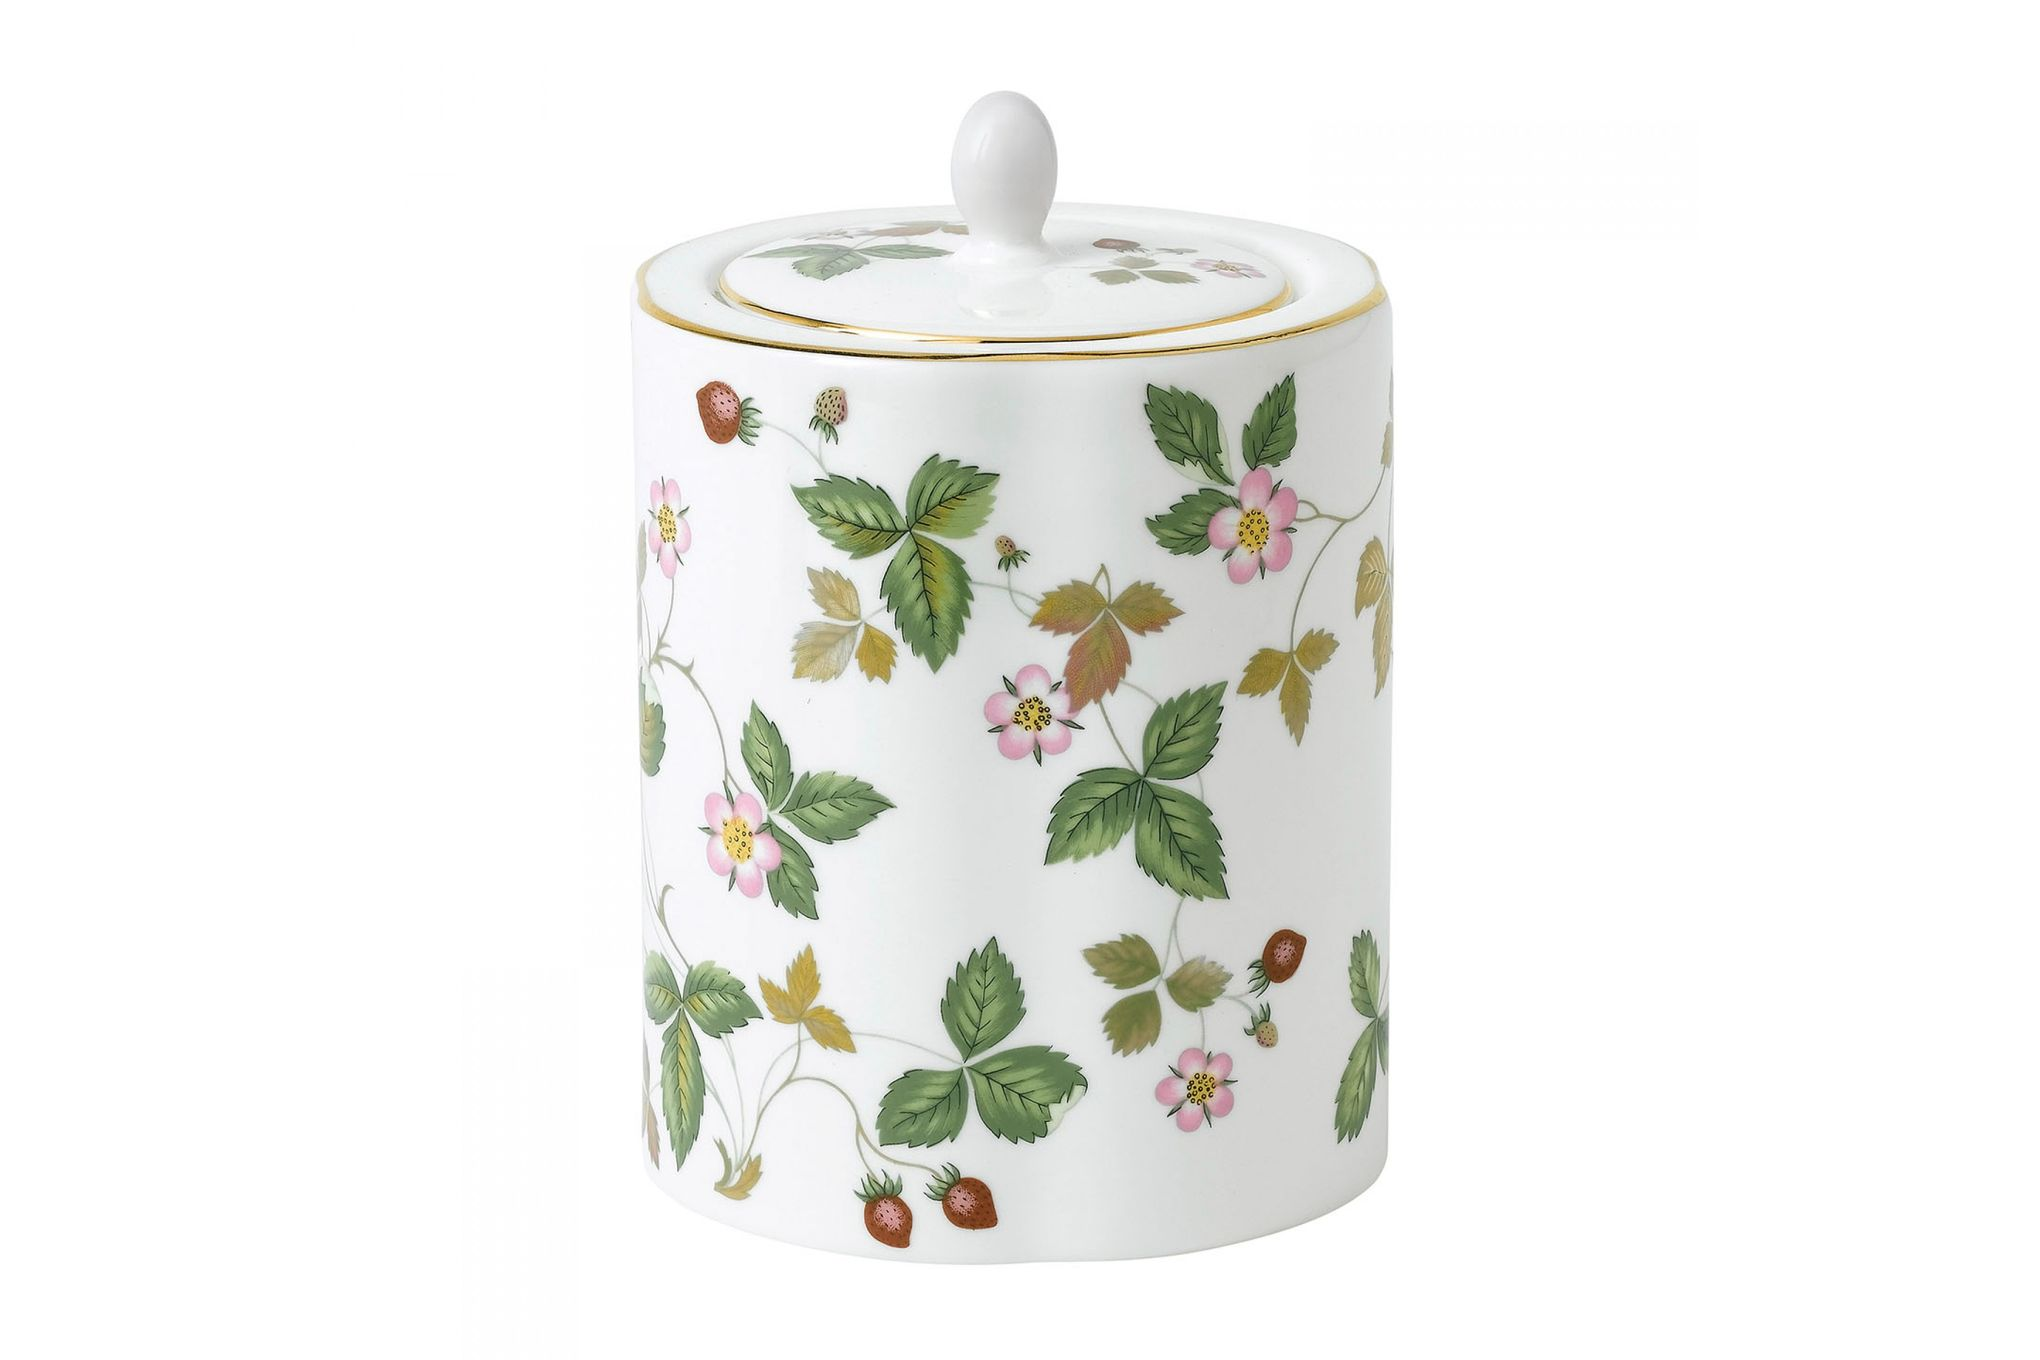 Wedgwood Wild Strawberry Tea Caddy Gift Boxed thumb 1